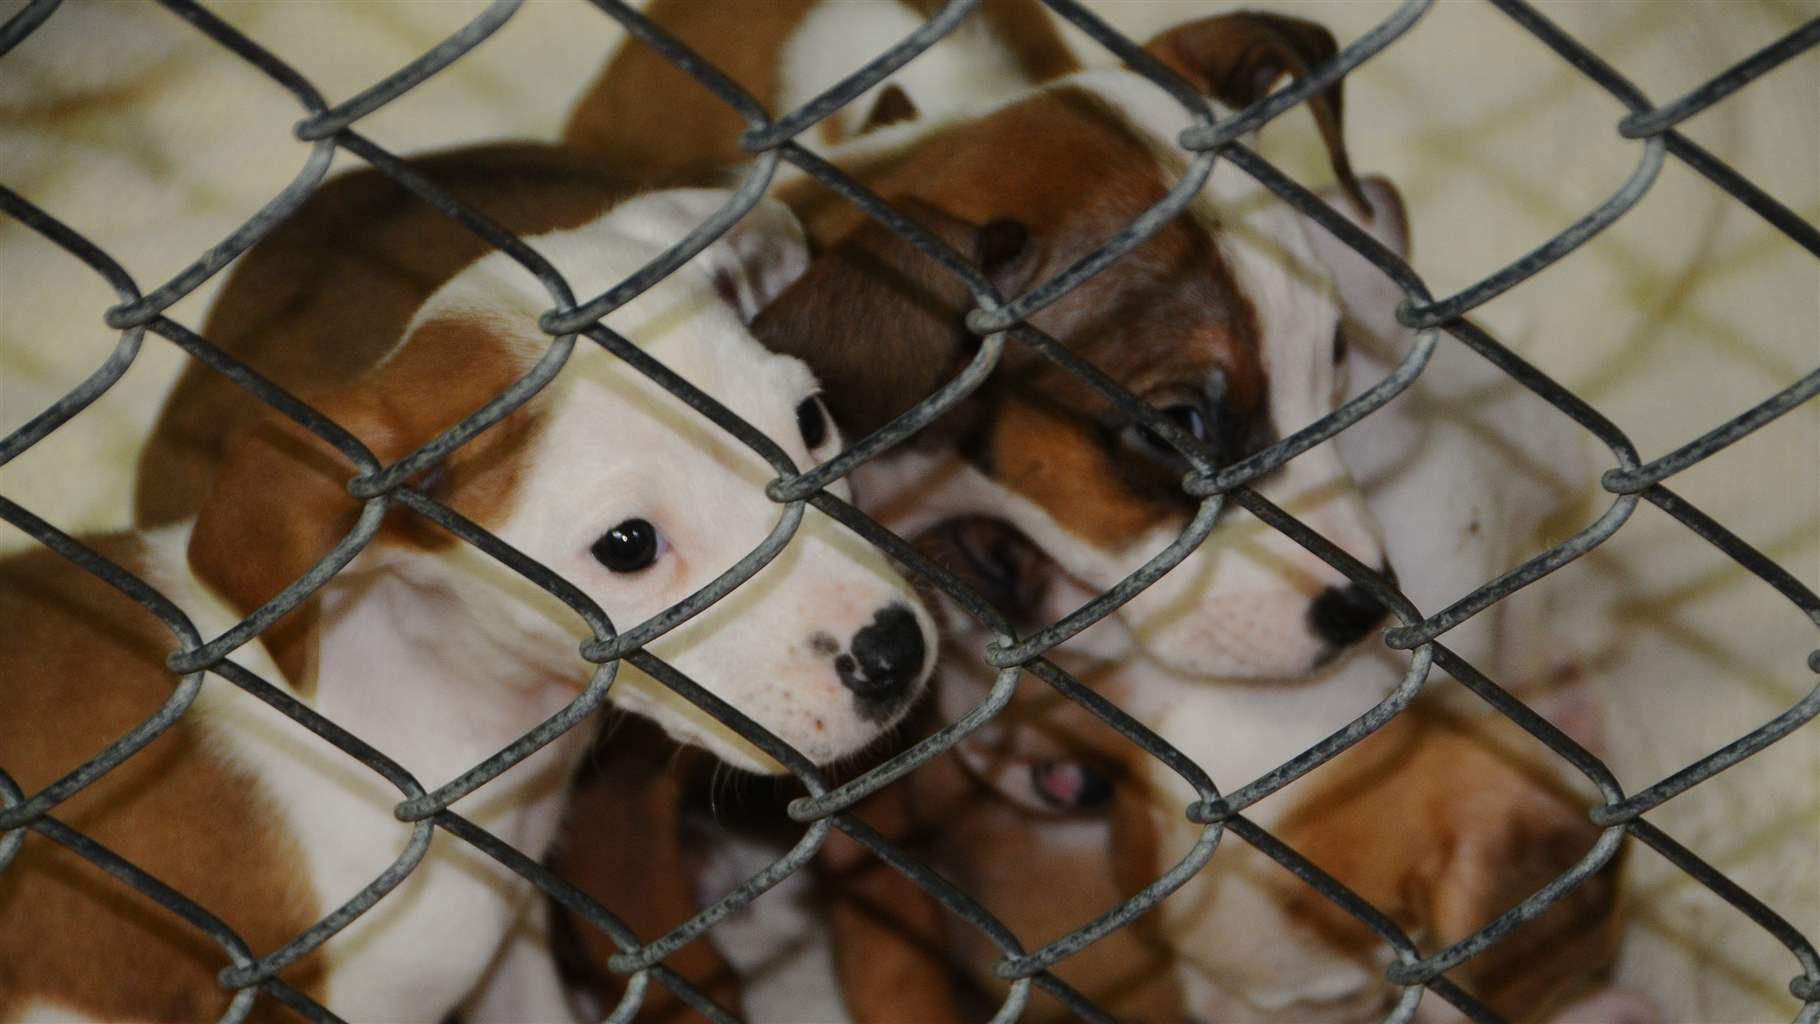 Rescue Network Sends Southern Puppies North | The Pew